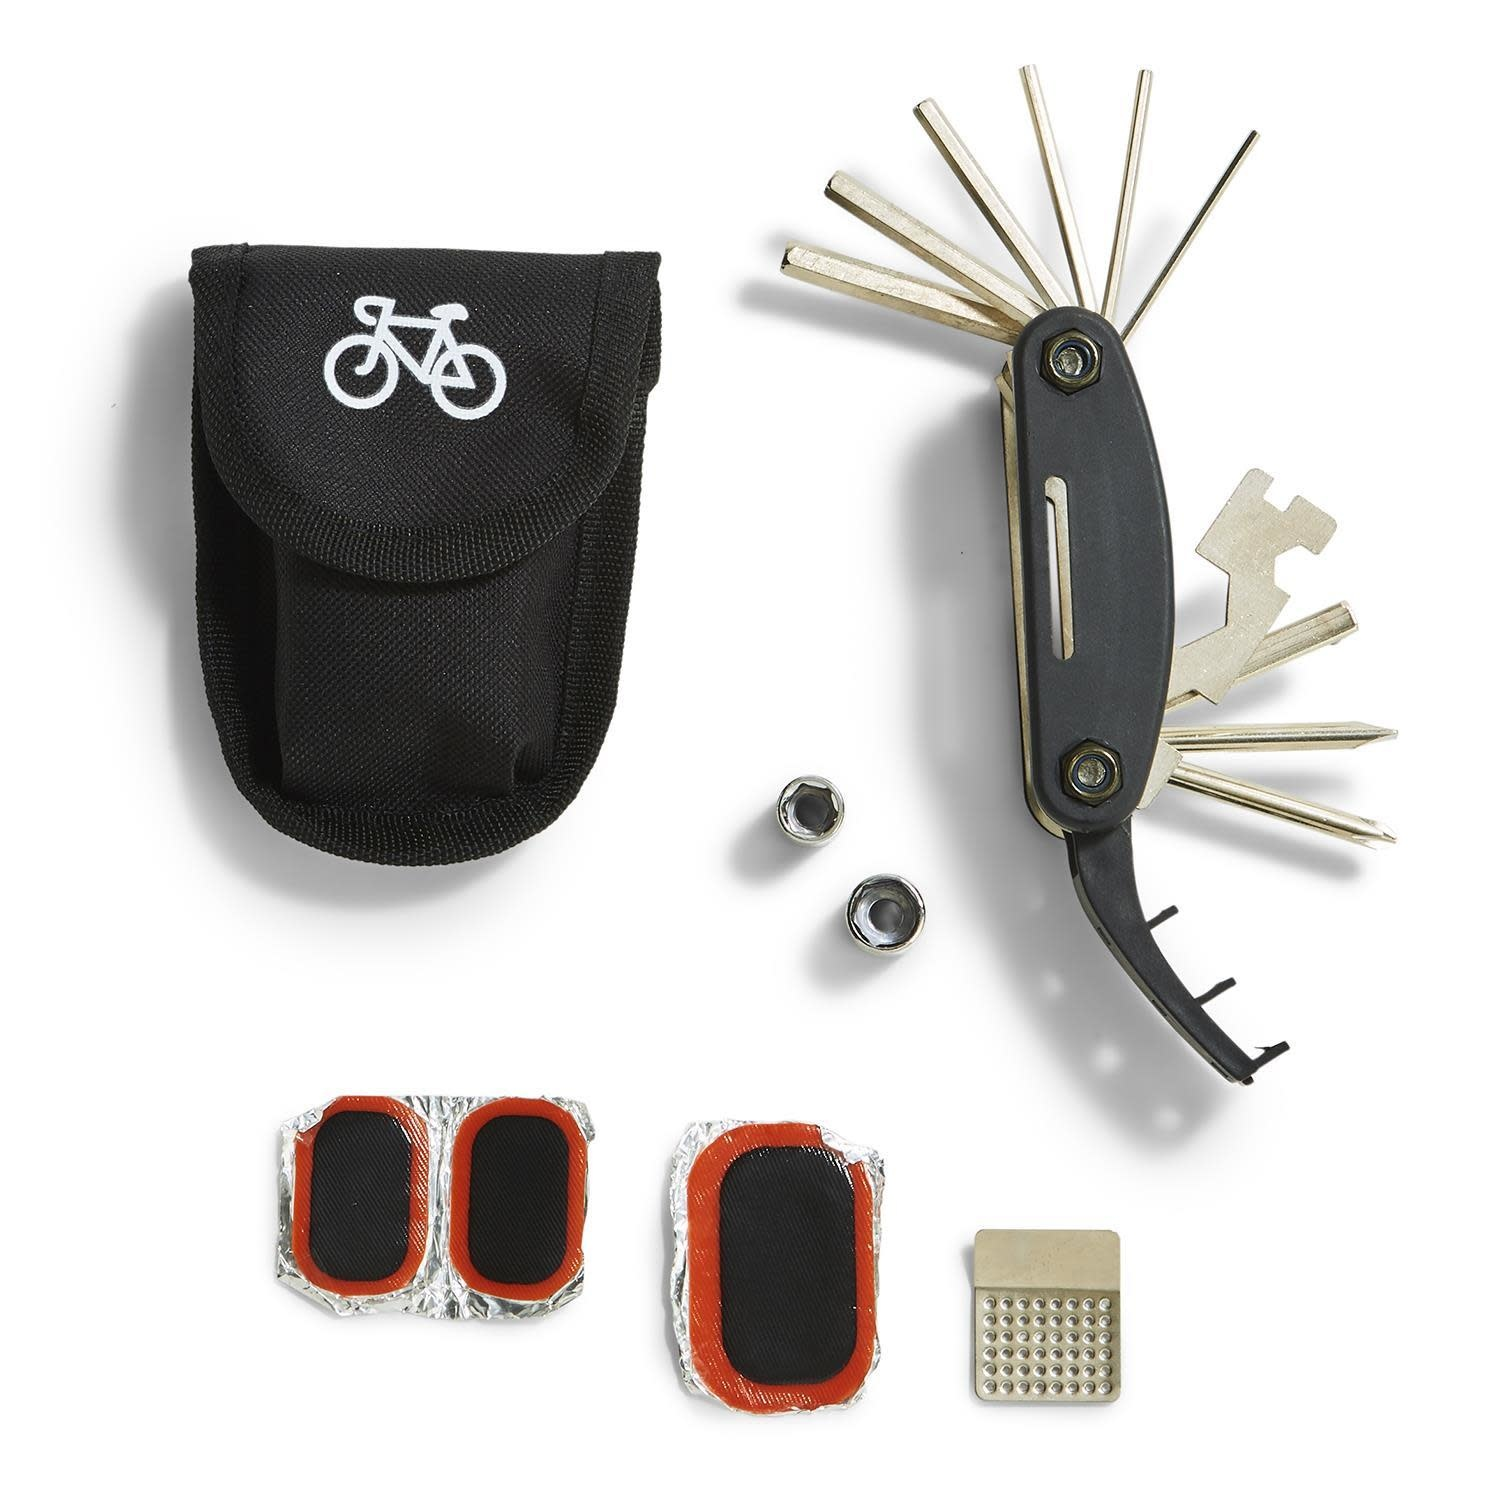 Twos Co 15-in-1 Bicycle Multi-Tool & Repair Kit